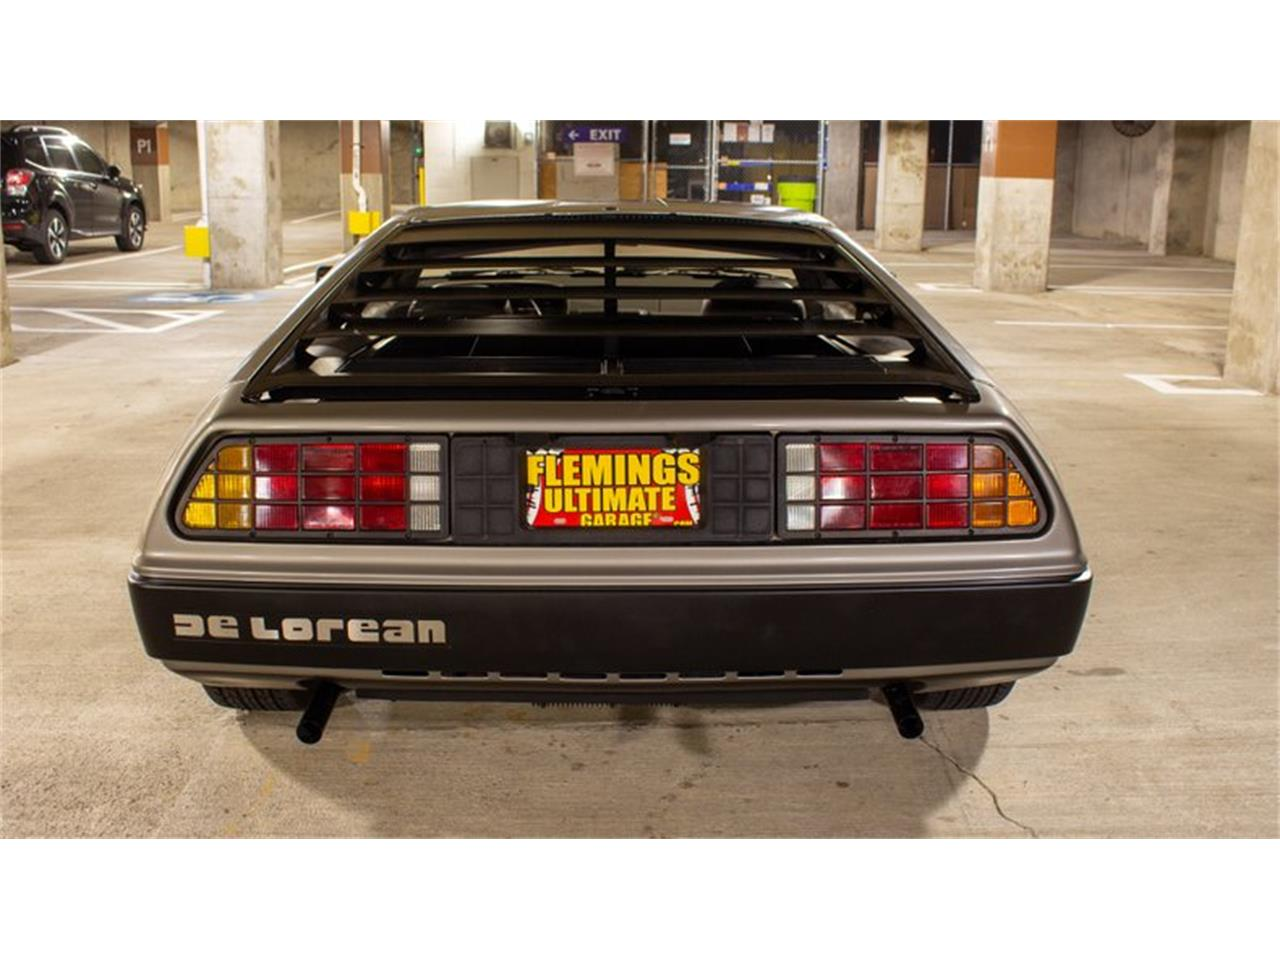 Large Picture of 1981 DeLorean DMC-12 - $49,990.00 Offered by Flemings Ultimate Garage - QZ9U